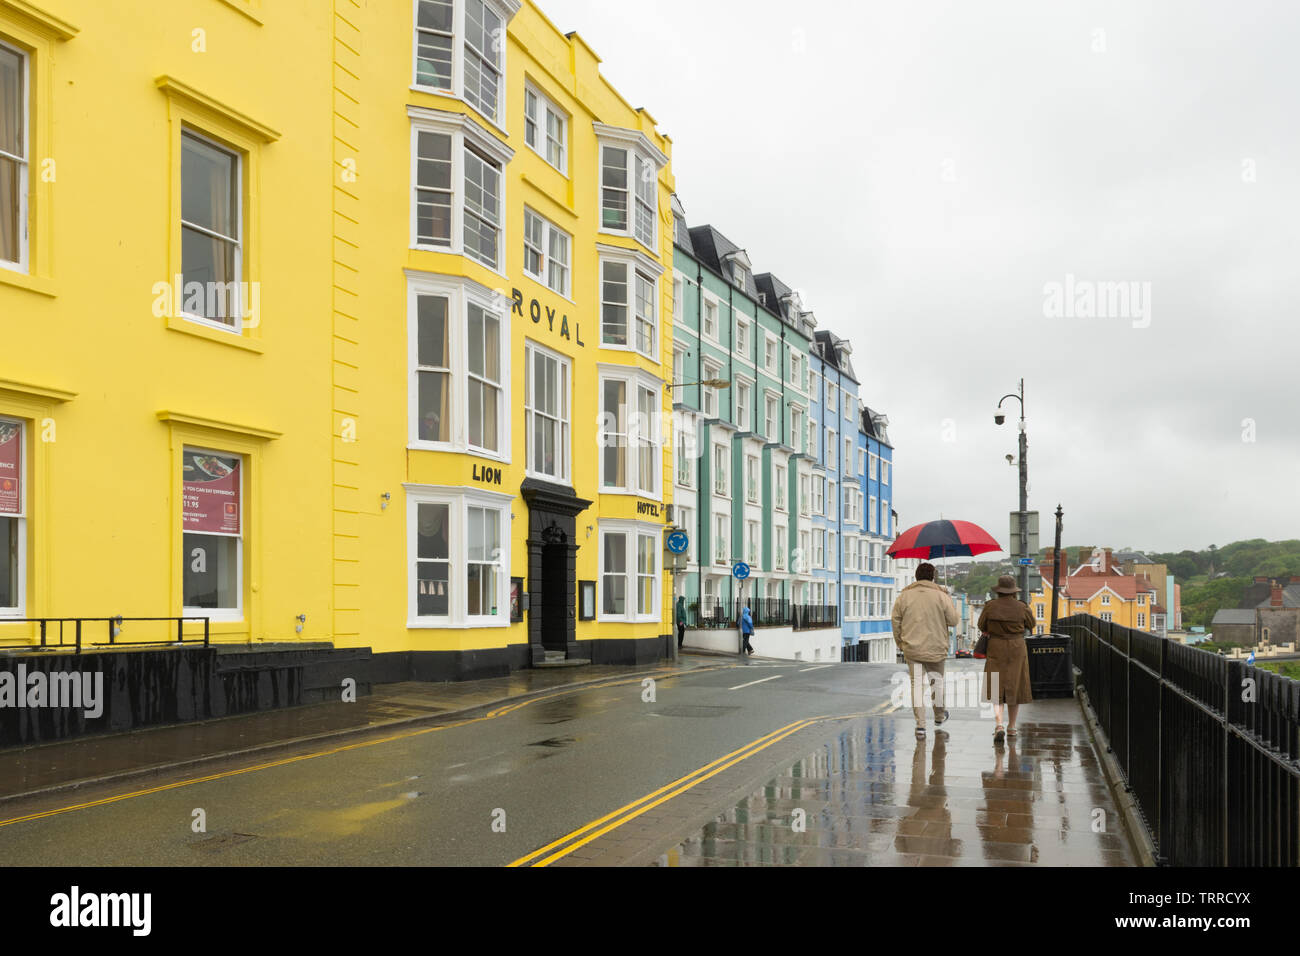 a-couple-walking-along-tenby-promenade-past-colourful-buildings-with-an-umbrella-on-a-rainy-day-pembrokeshire-wales-TRRCYX.jpg